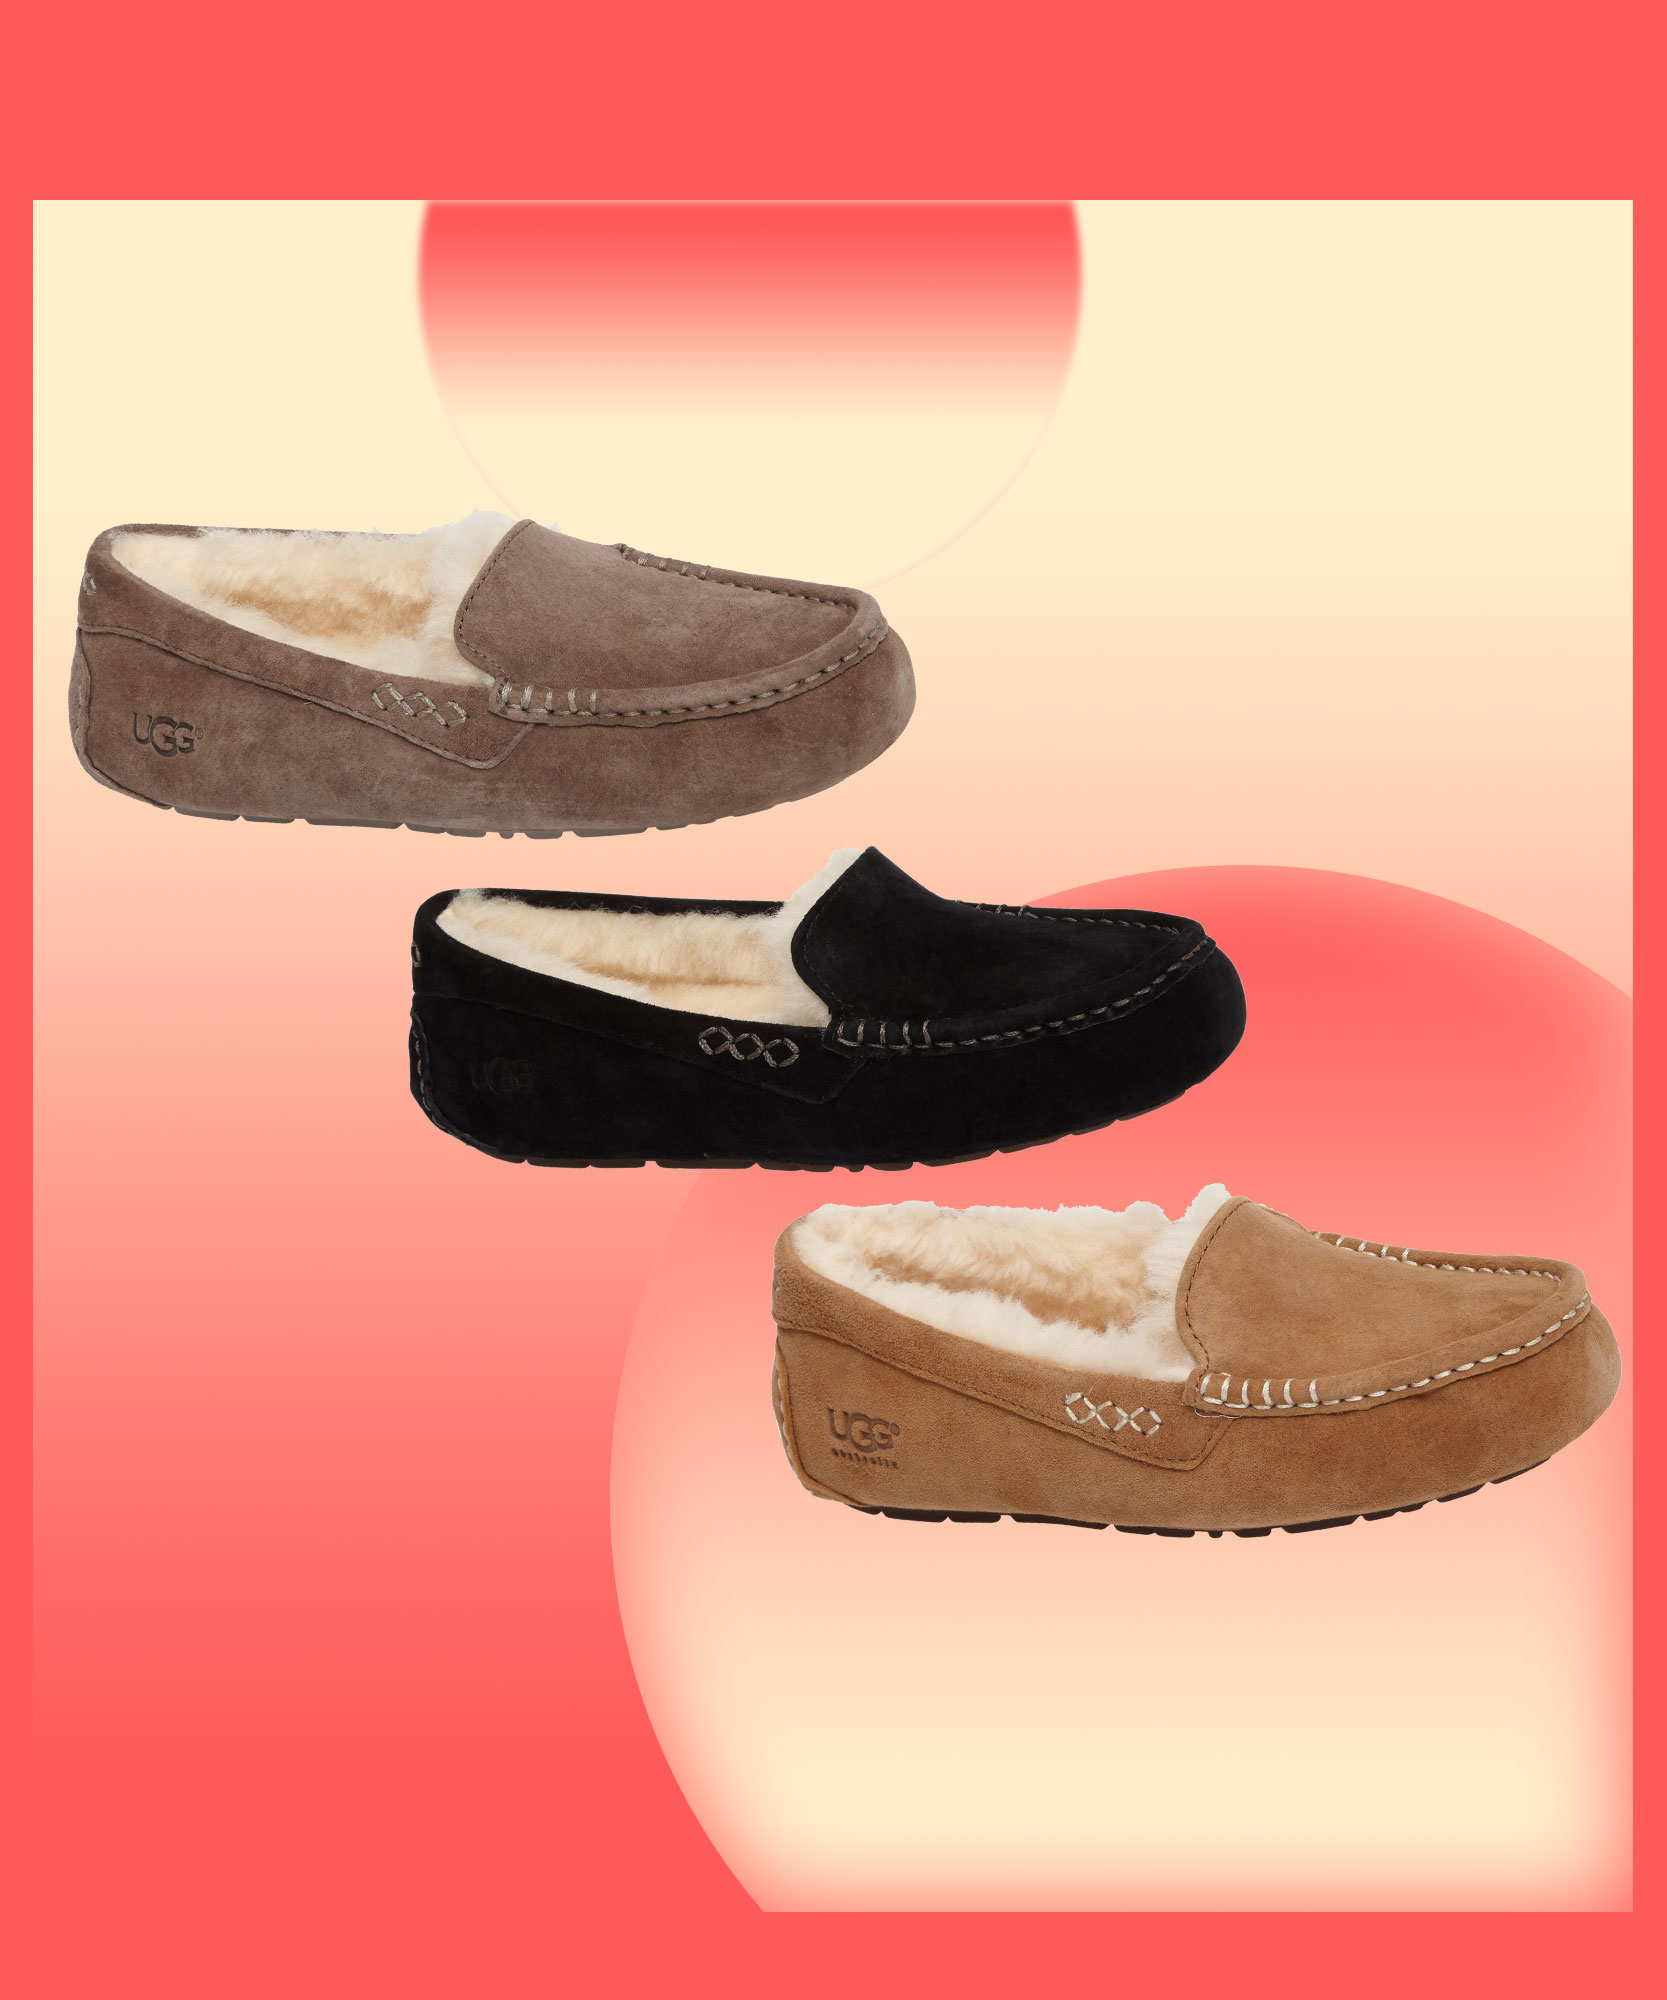 Nordstrom Ugg Slipper Sale